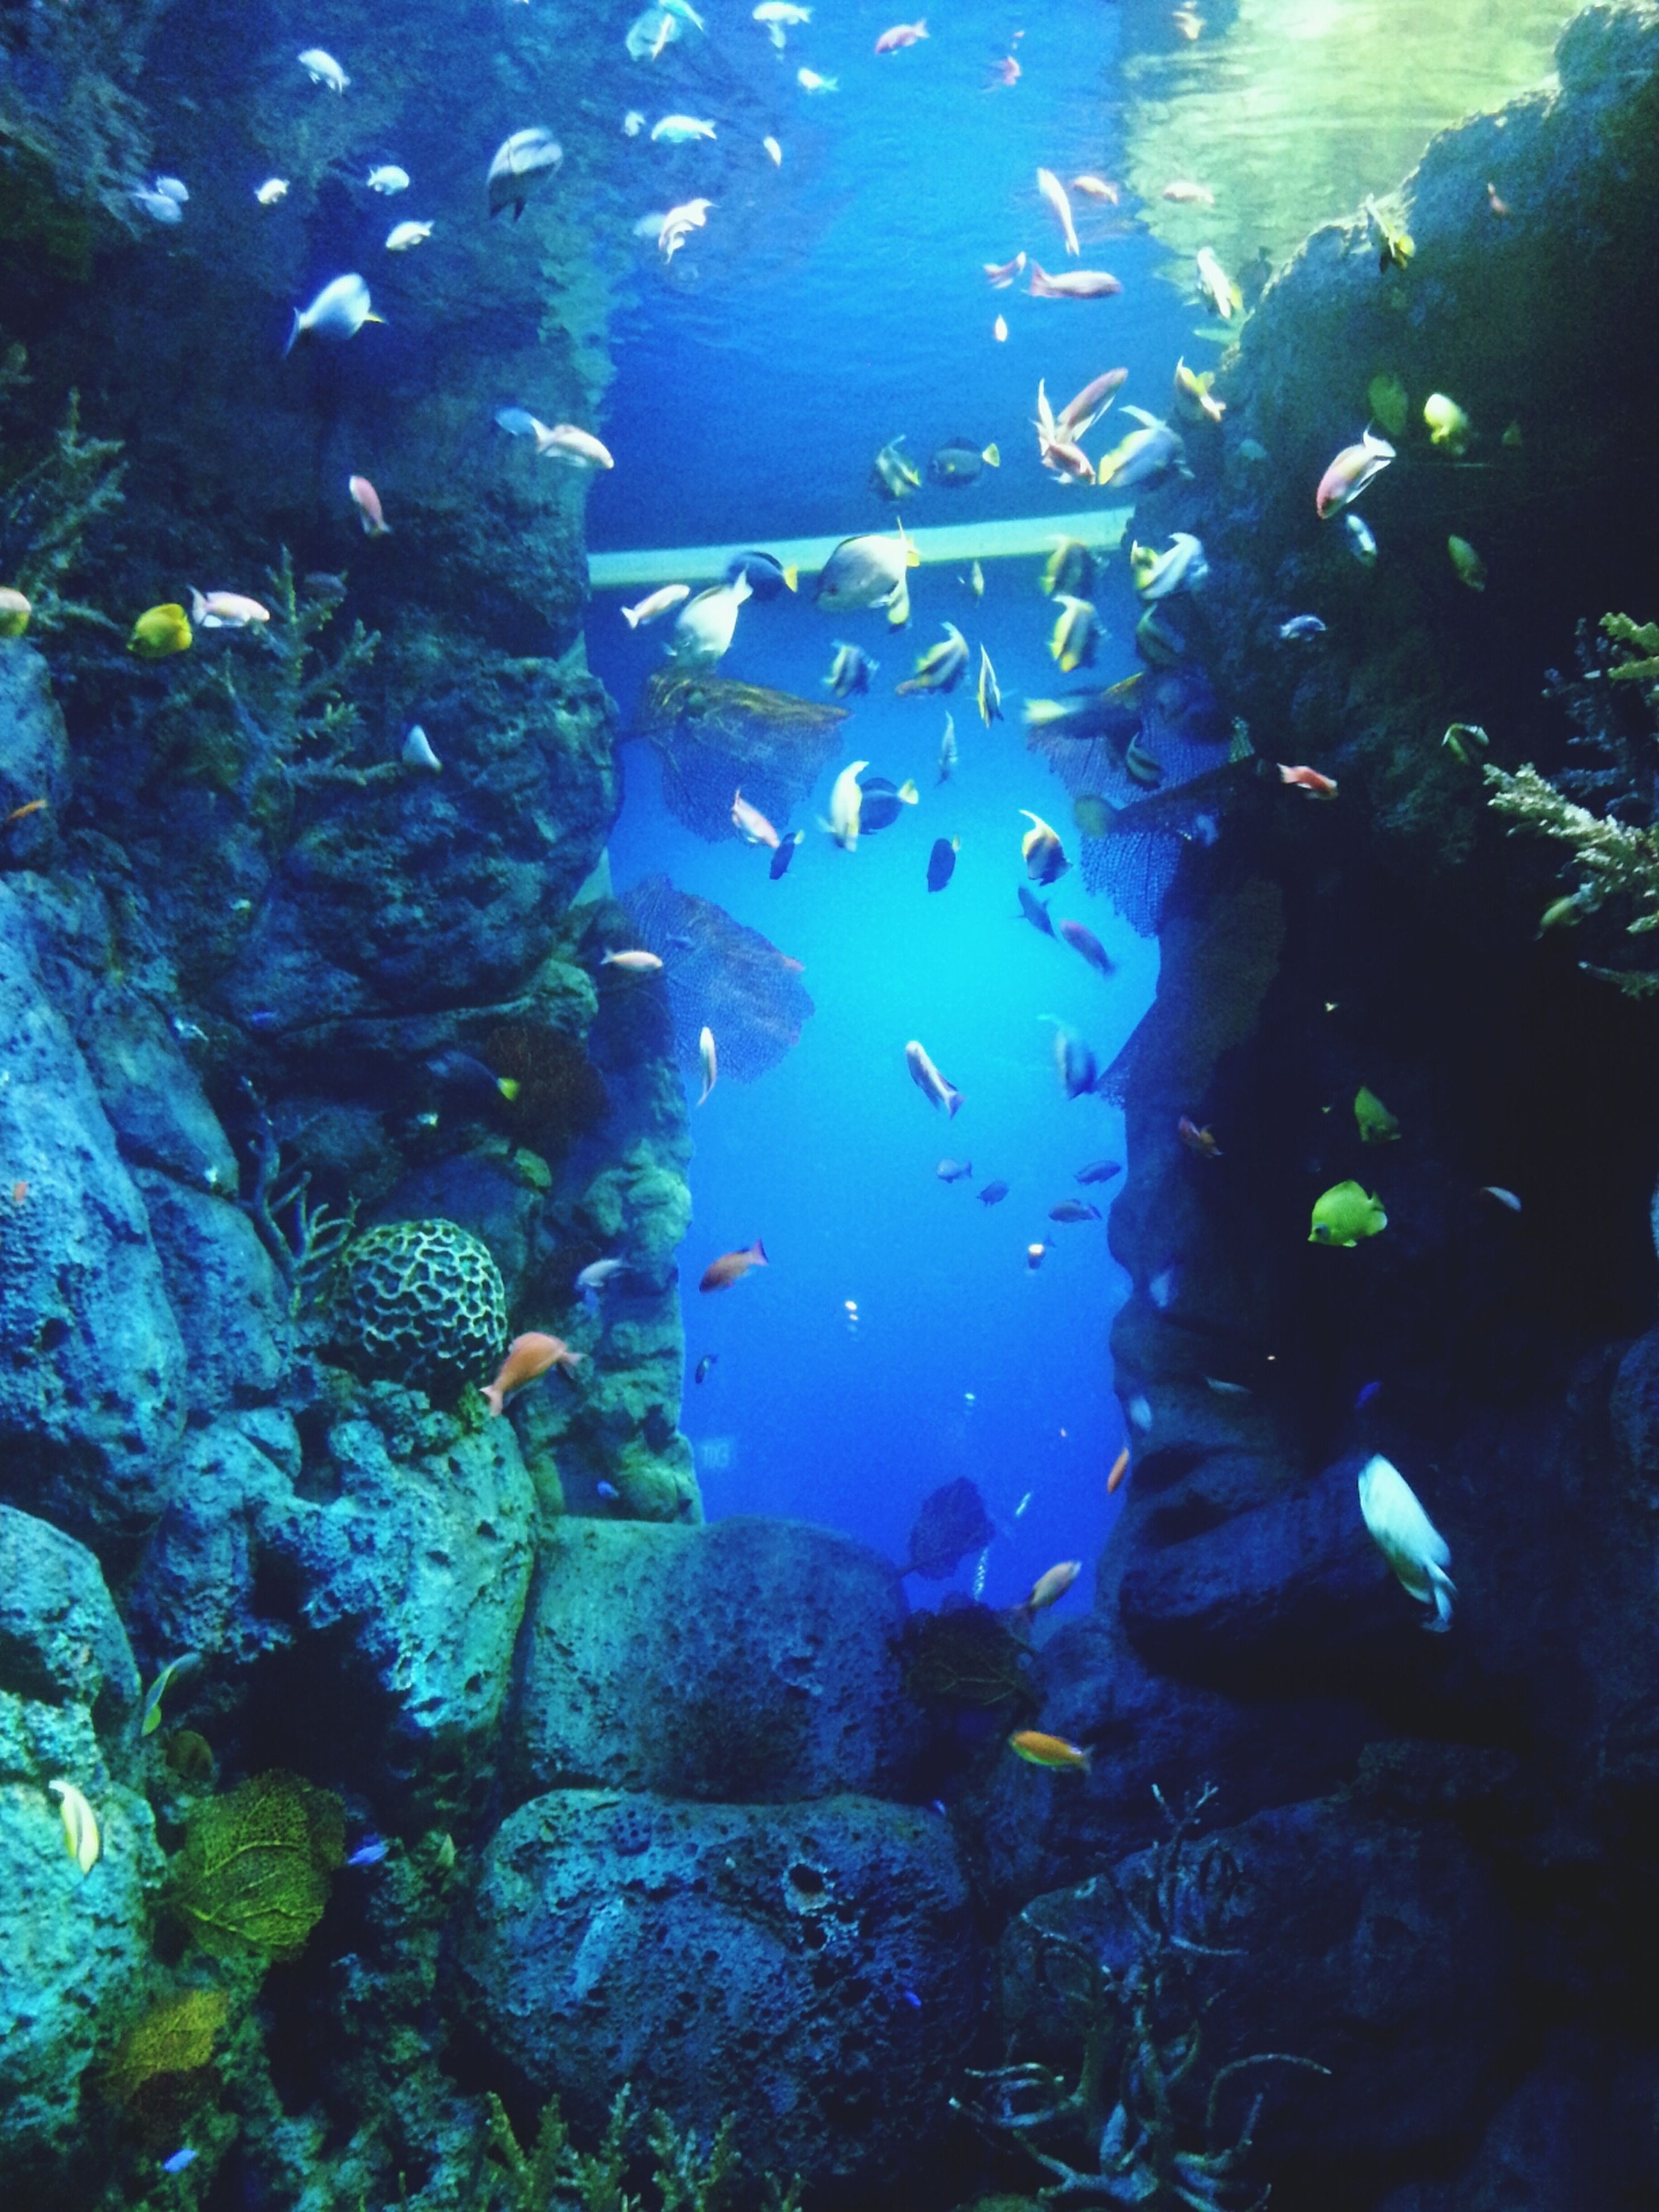 underwater, undersea, swimming, sea life, water, animal themes, fish, animals in the wild, wildlife, blue, sea, aquarium, rock - object, coral, nature, school of fish, transparent, animals in captivity, beauty in nature